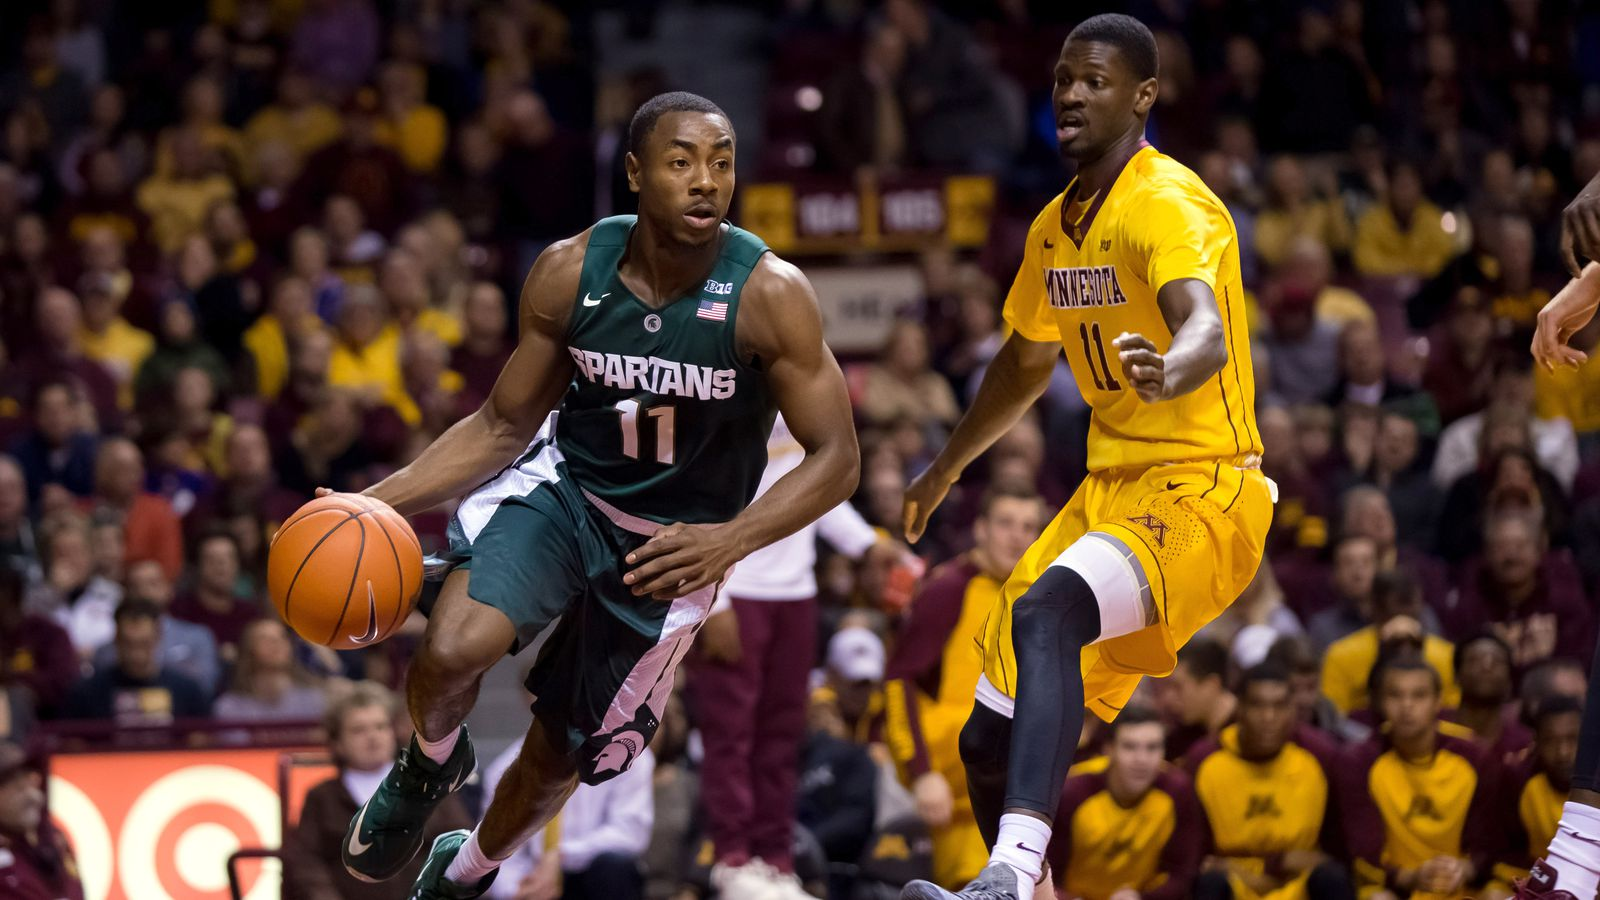 Michigan State basketball vs Oakland tipoff Matchup analysis prediction A look at Friday nights matchup and a prediction for the Spartans and Golden